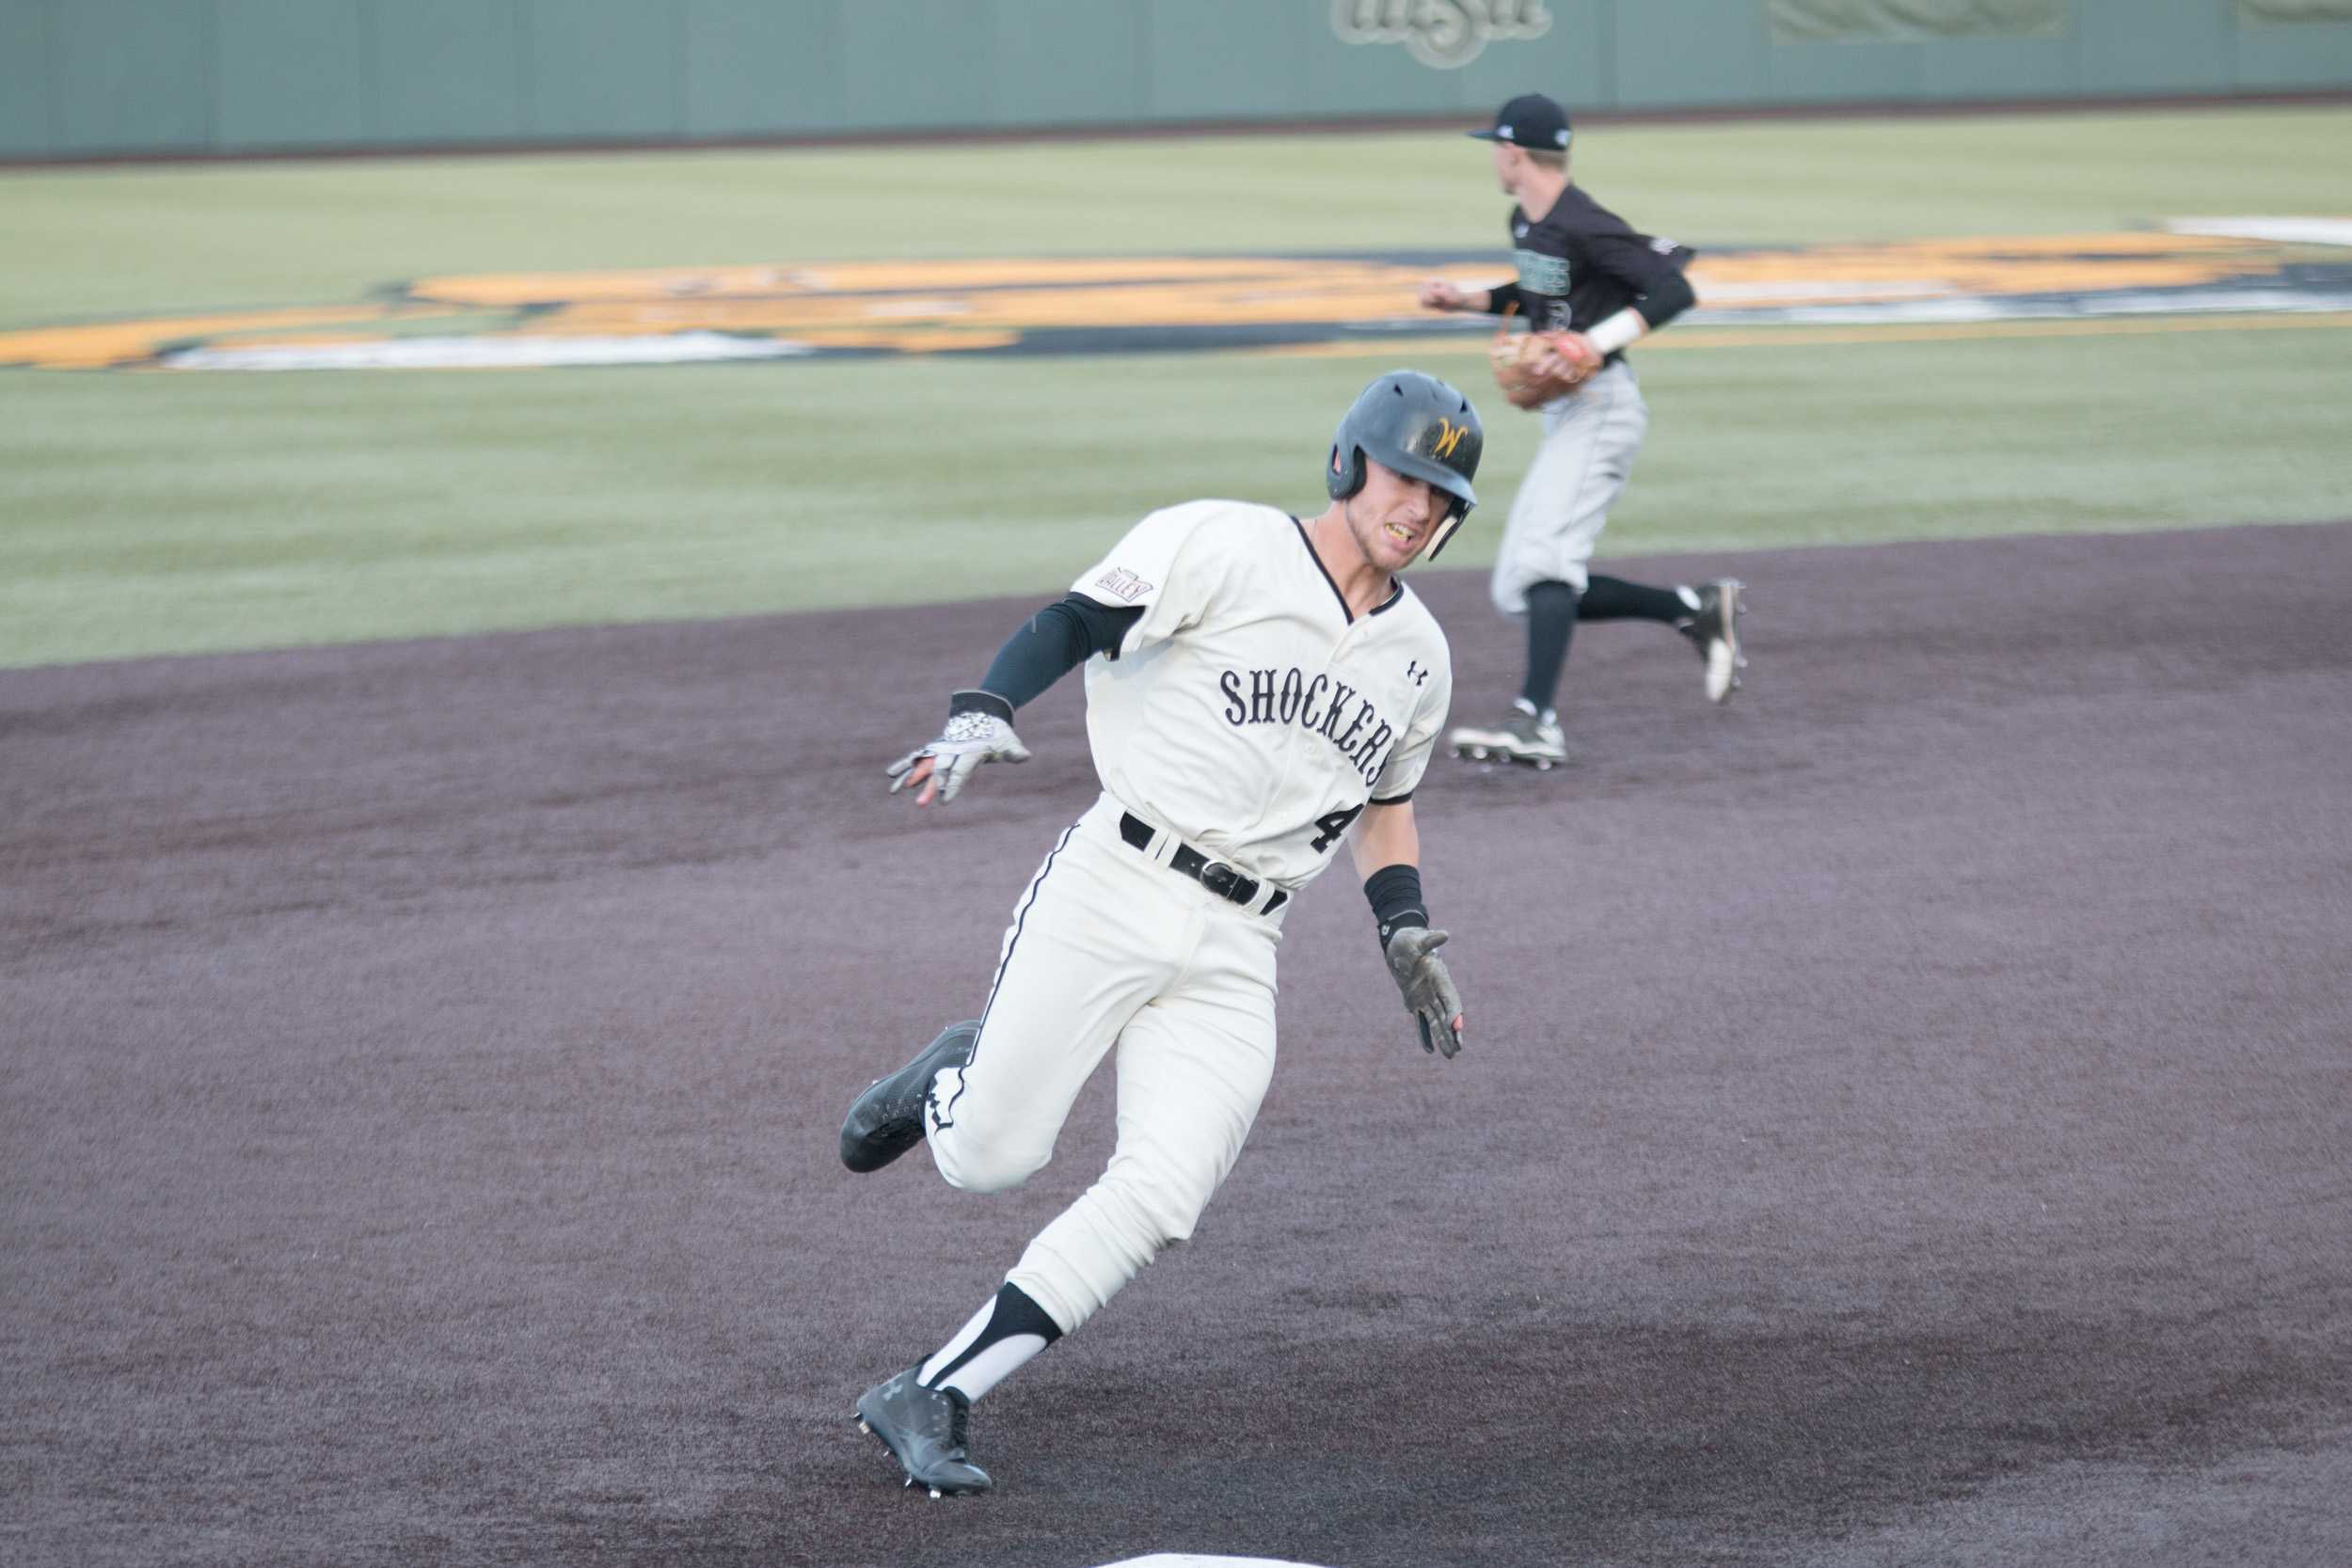 Wichita State's Jordan Boyer rounds third base headed to home to score. Boyer had two RBI during the game against Utah Valley. (Feb. 17, 2017)